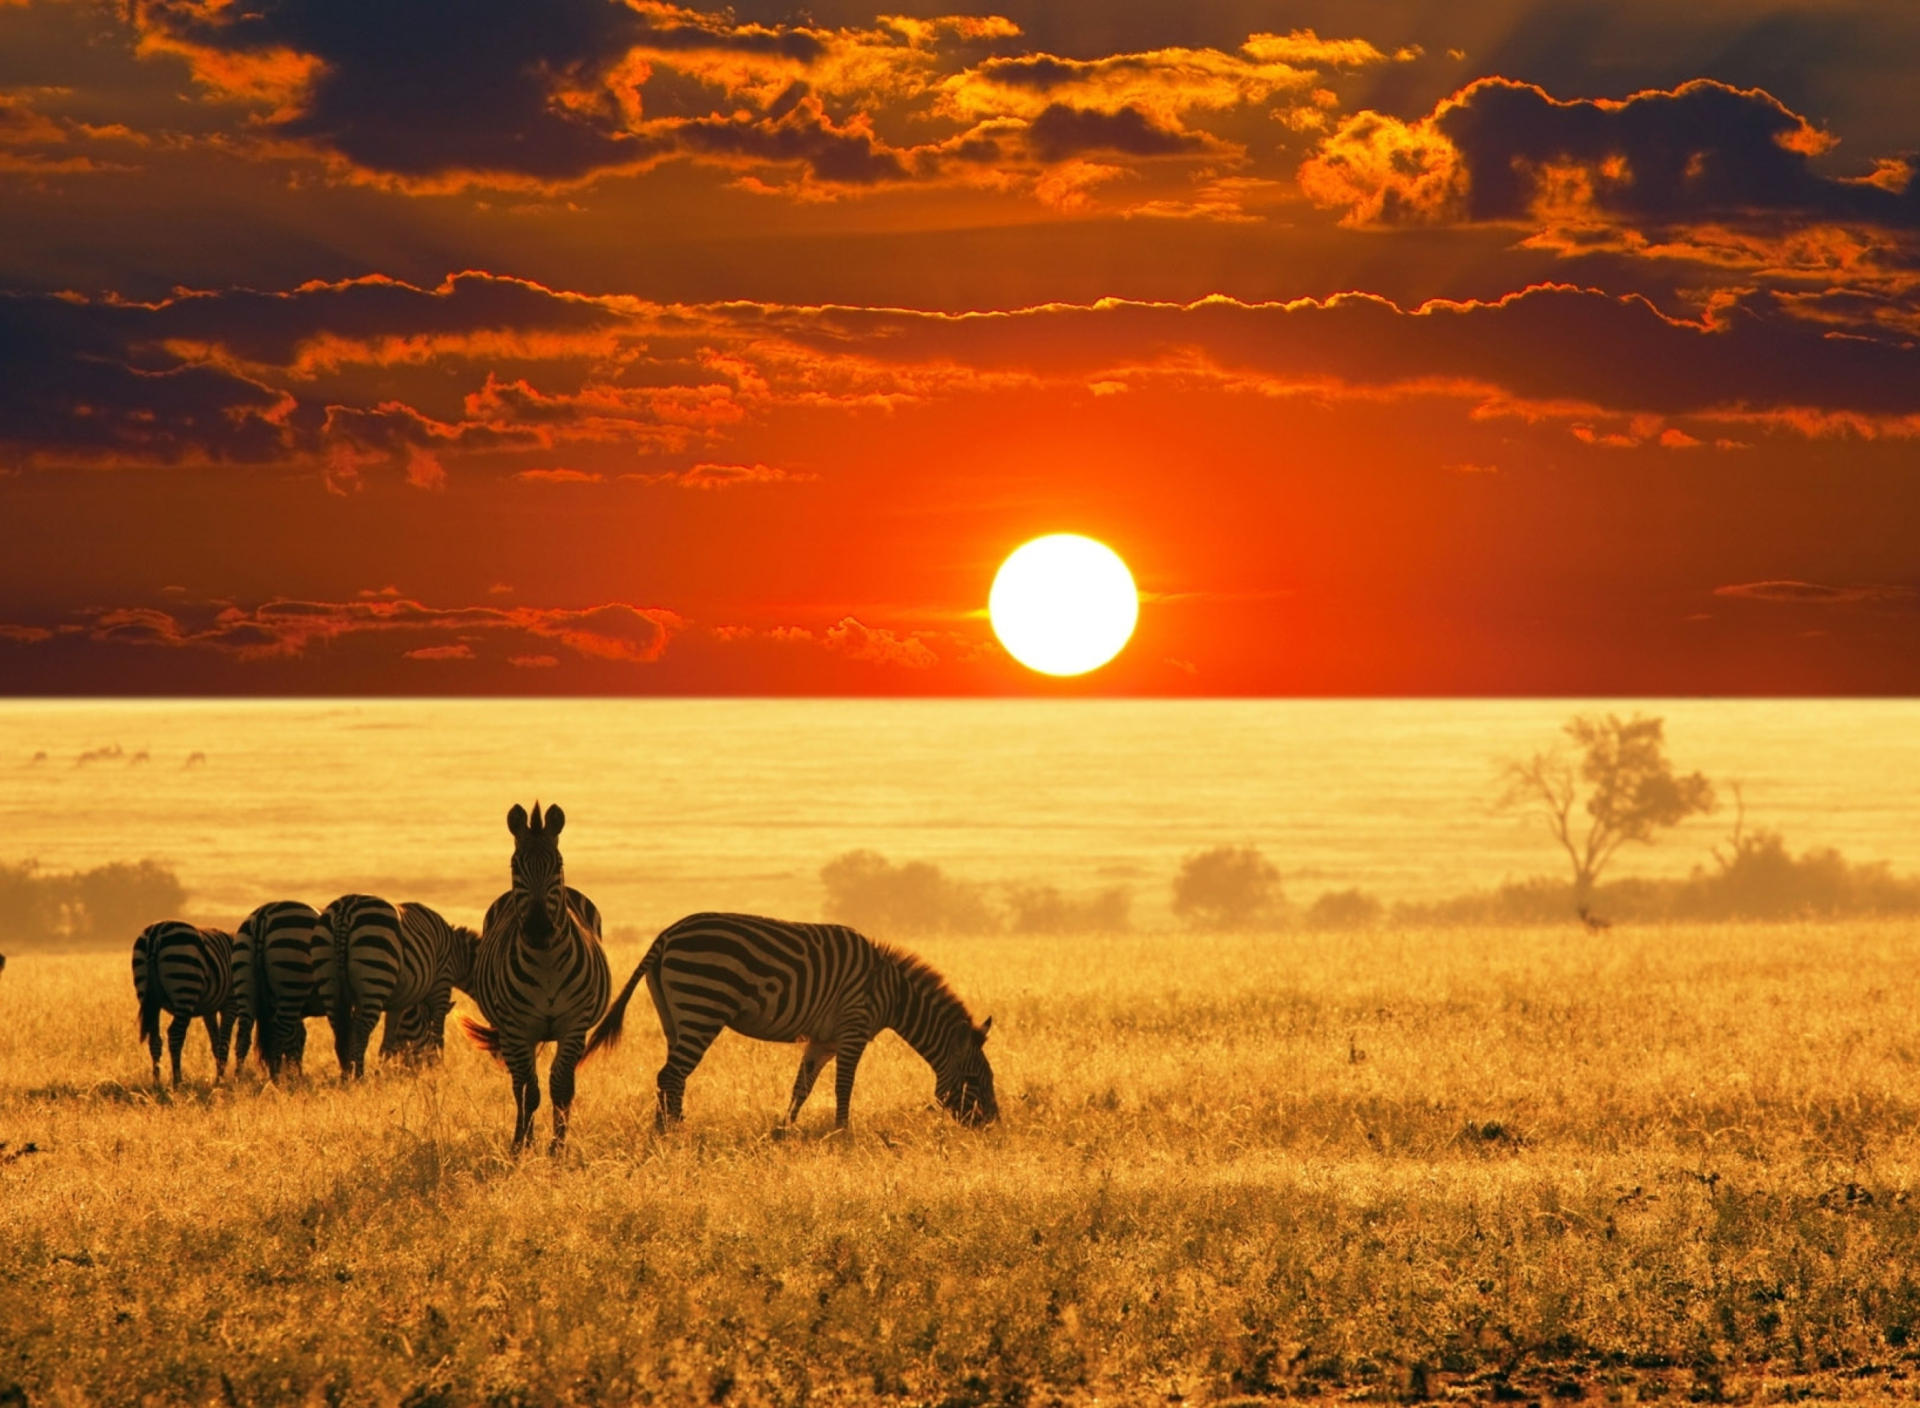 Screenshot №1 pro téma Zebras At Sunset In Savannah Africa 1920x1408